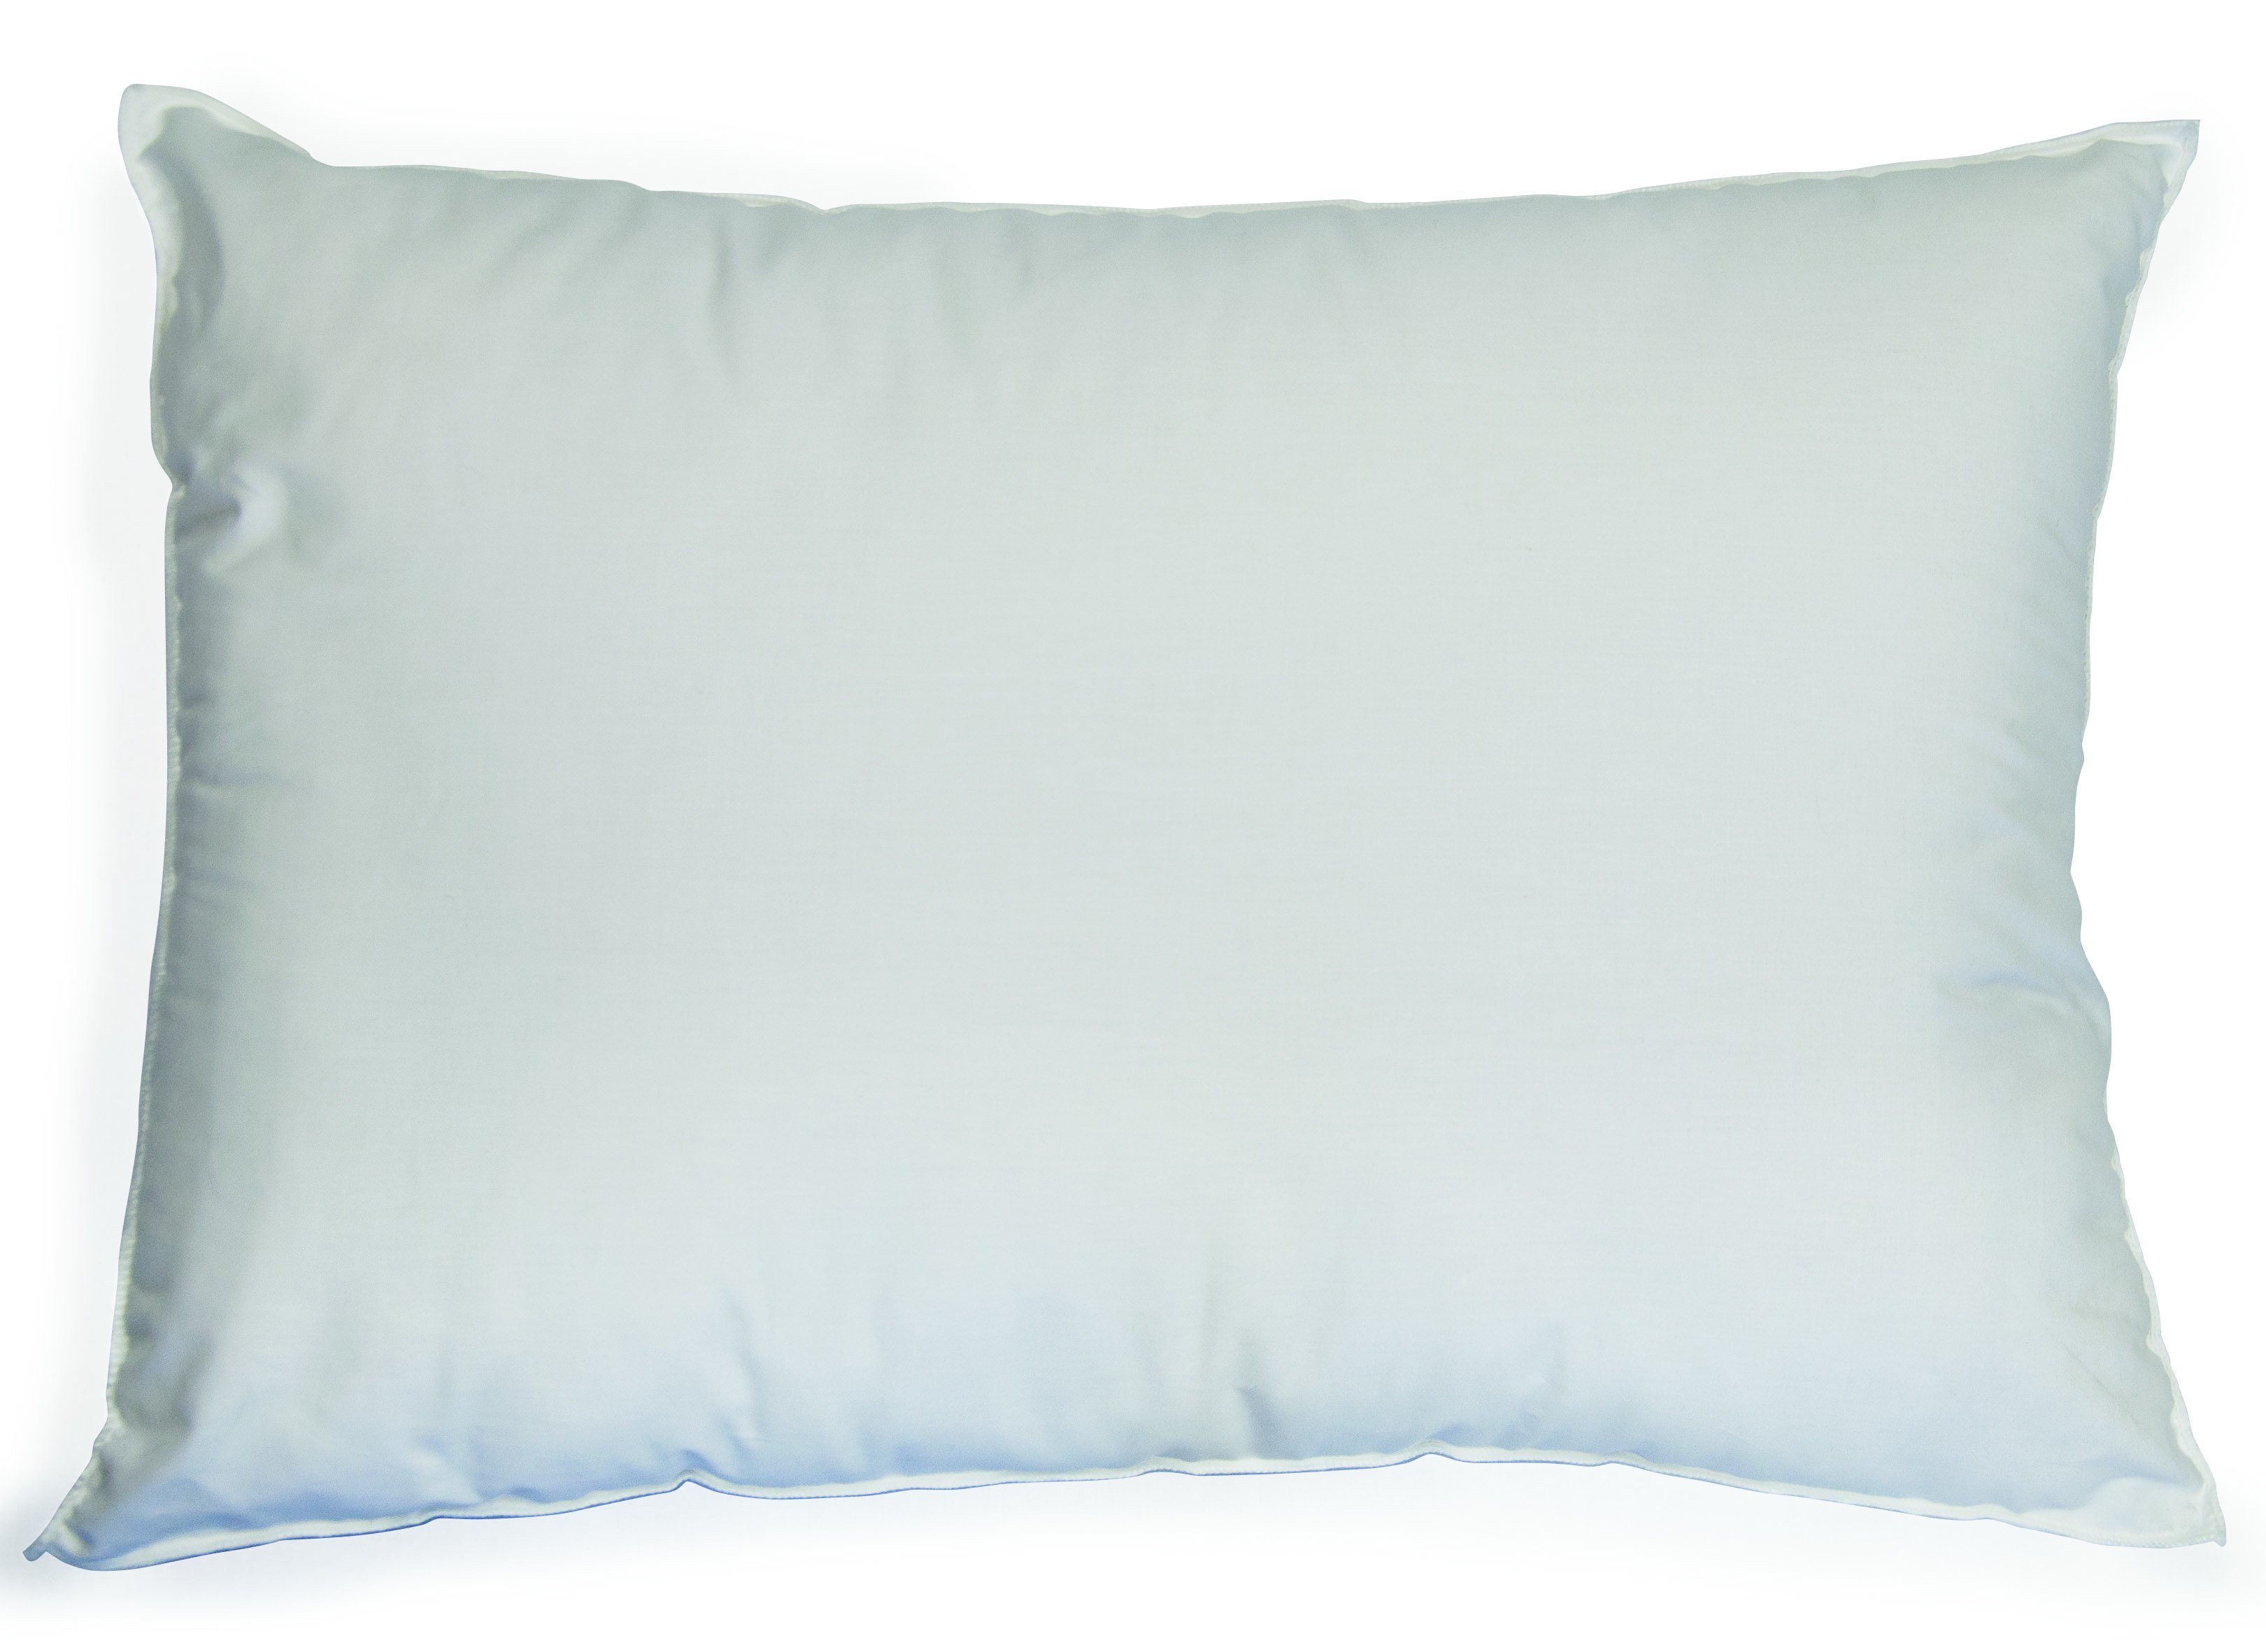 Bed Pillow, McKesson, 20 X 26 Inch White Disposable, 41-2026-F - Case of 12